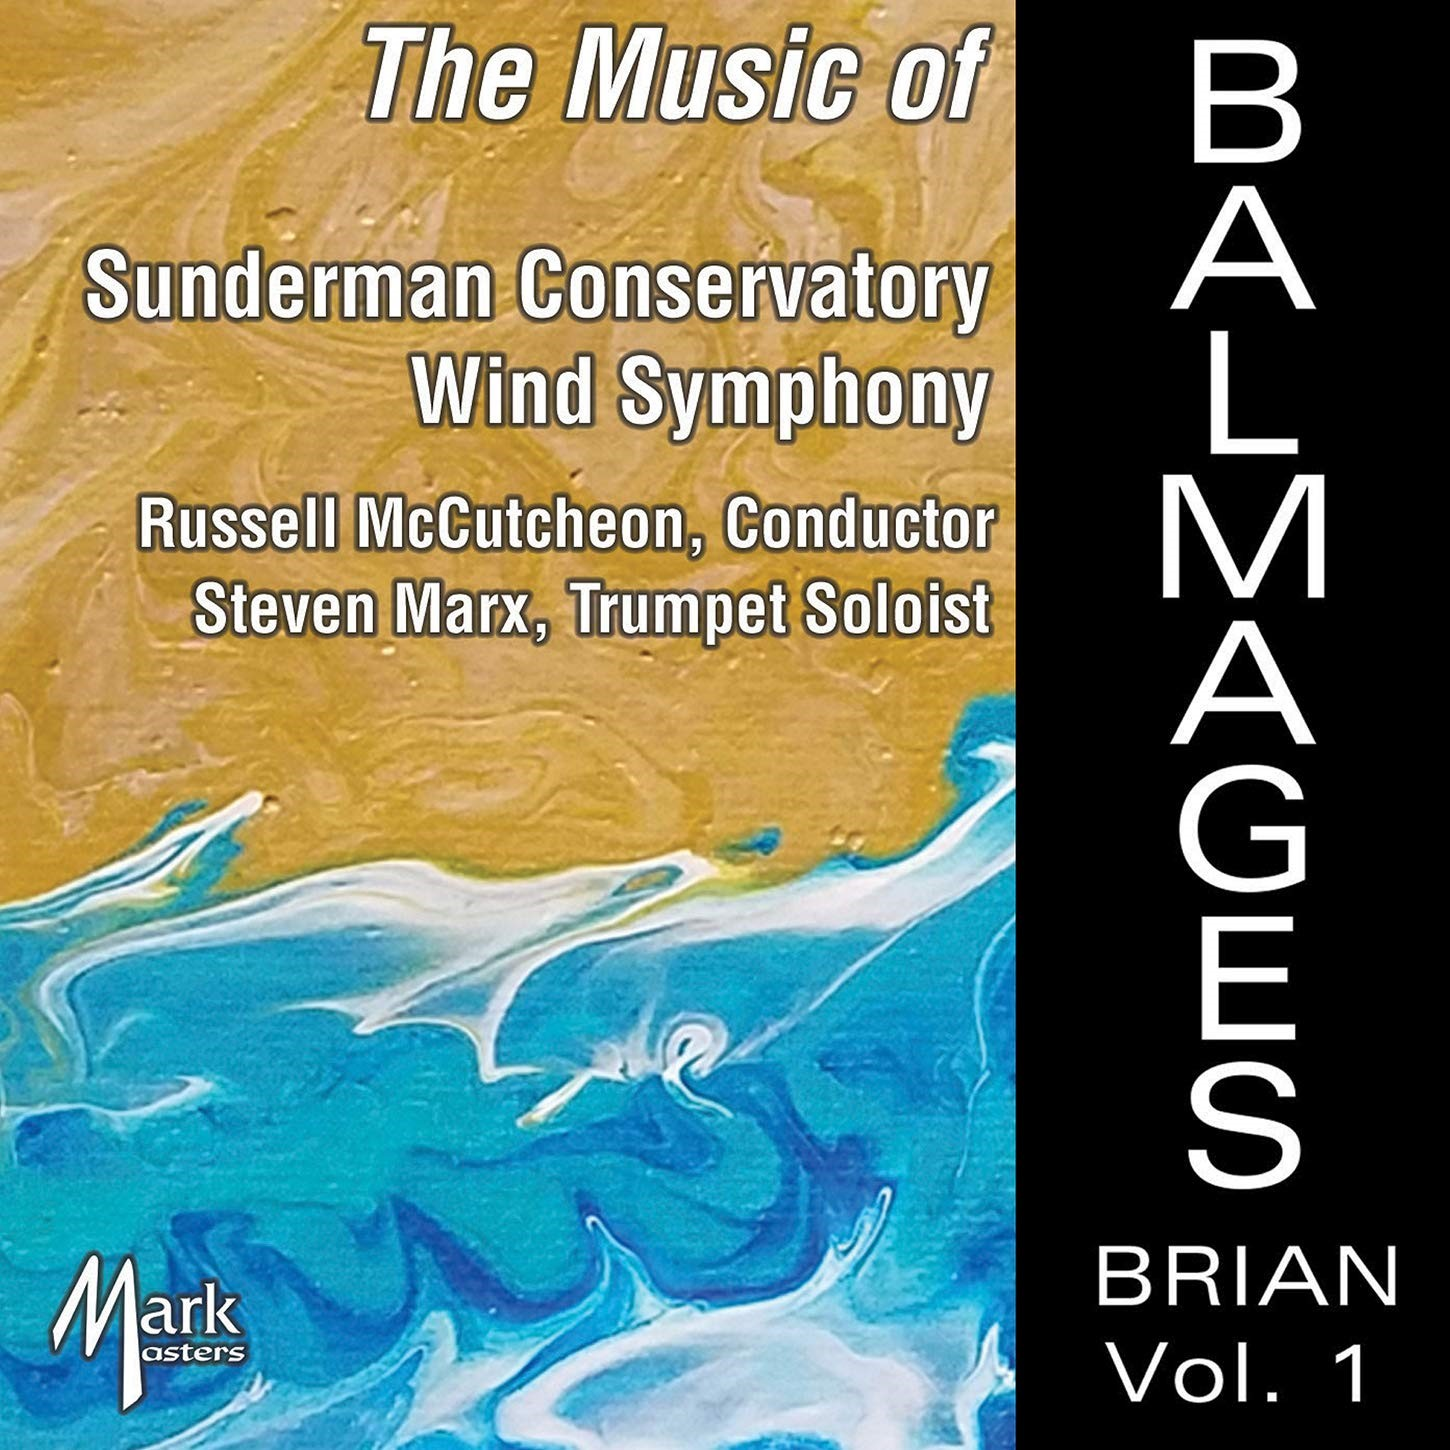 In August, the Sunderman Conservatory Wind Symphony put out its newest album, The Music of Brian Balmages, Vol. 1 (Photo courtesy of the Sunderman Conservatory).